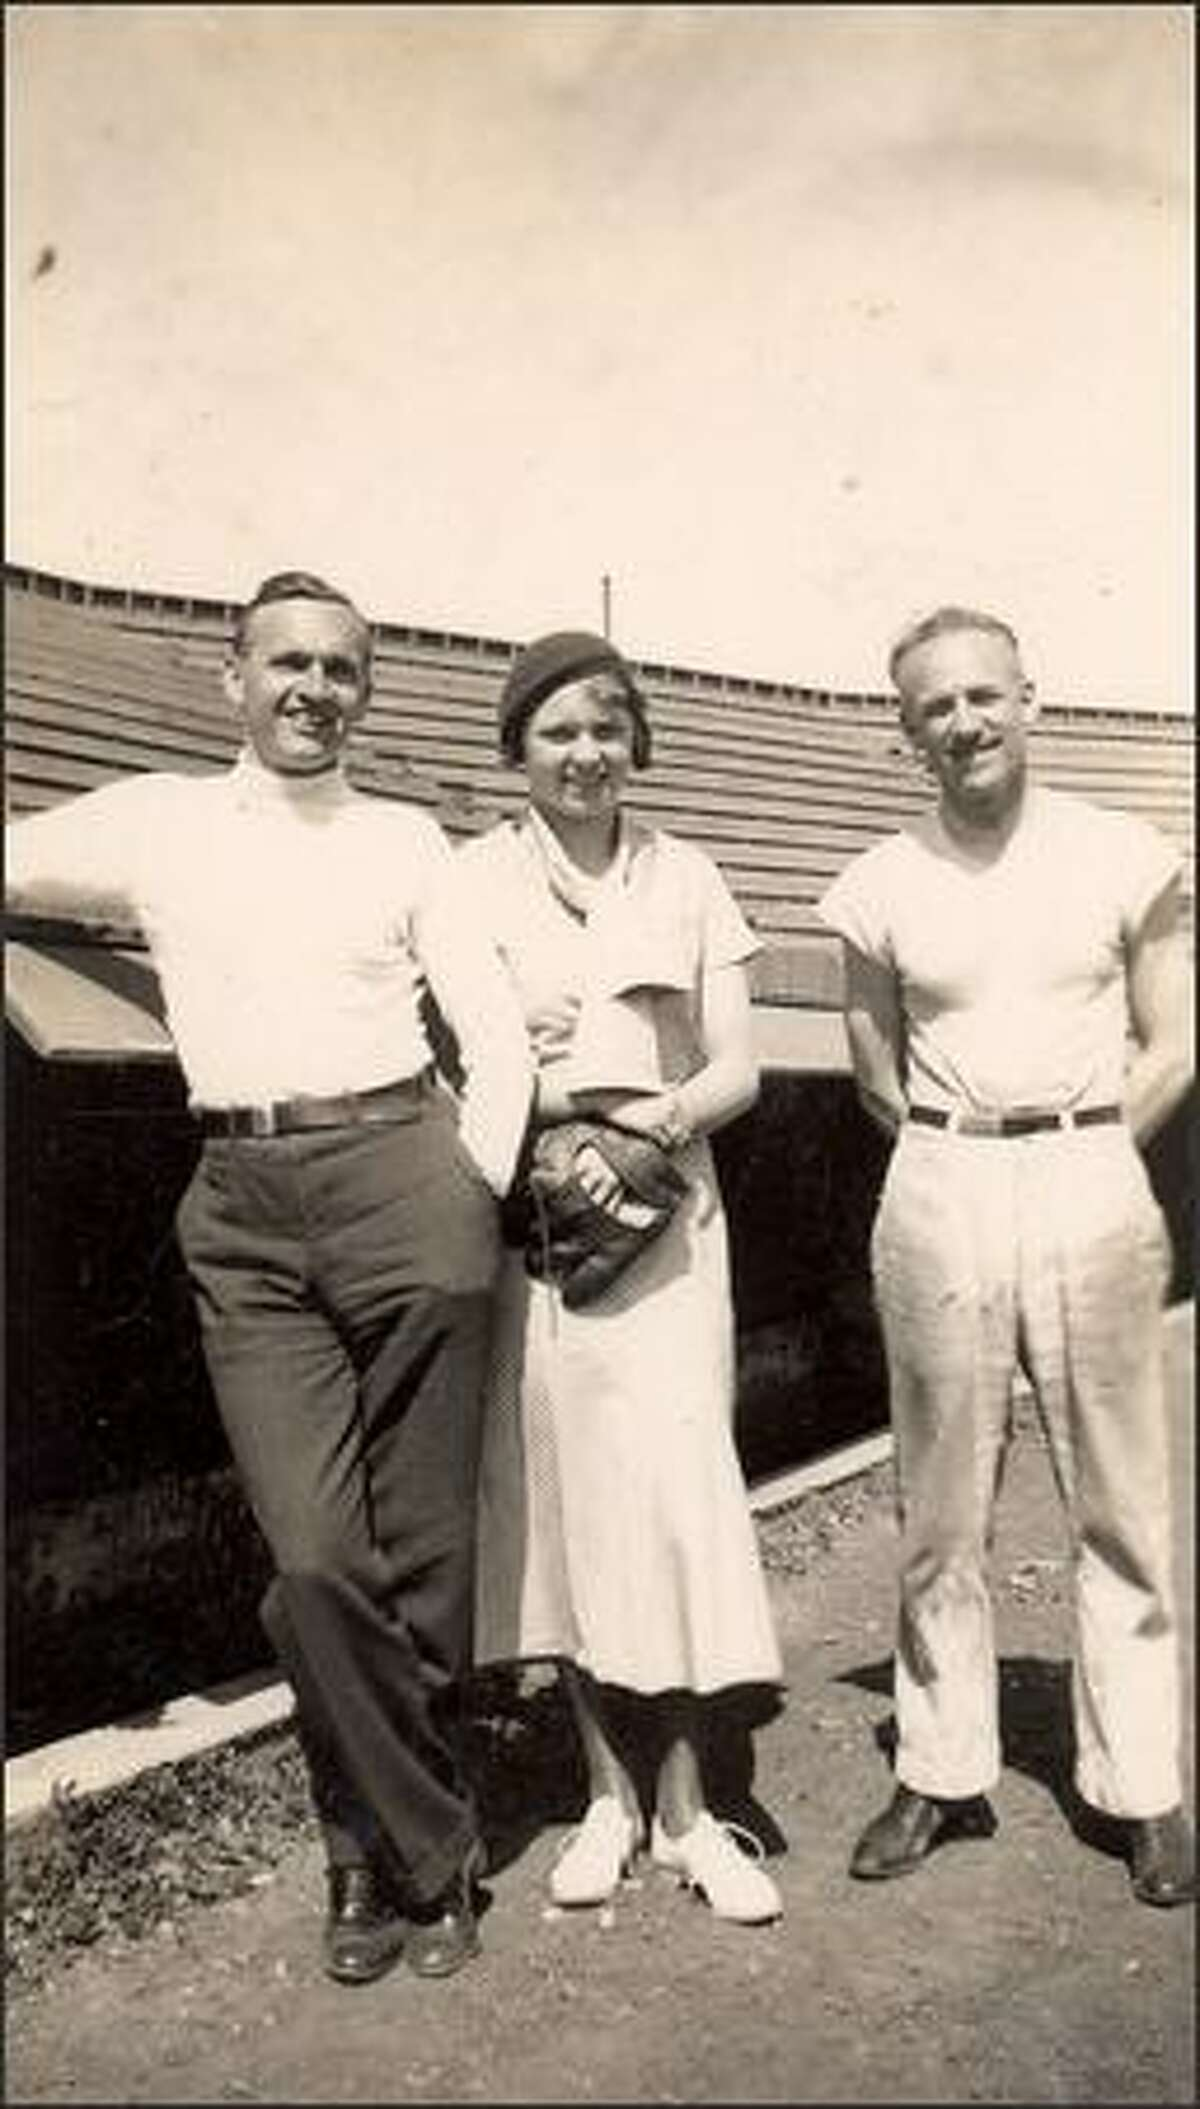 Brougham stands in California in 1932 with his daughter, Alice (who later married Dewey Soriano), and Ad Schact, who then was the trainer of the Seattle Indians and the Seattle Eskimos hockey team. Schact later became the first professional trainer in the major leagues with the White Sox.